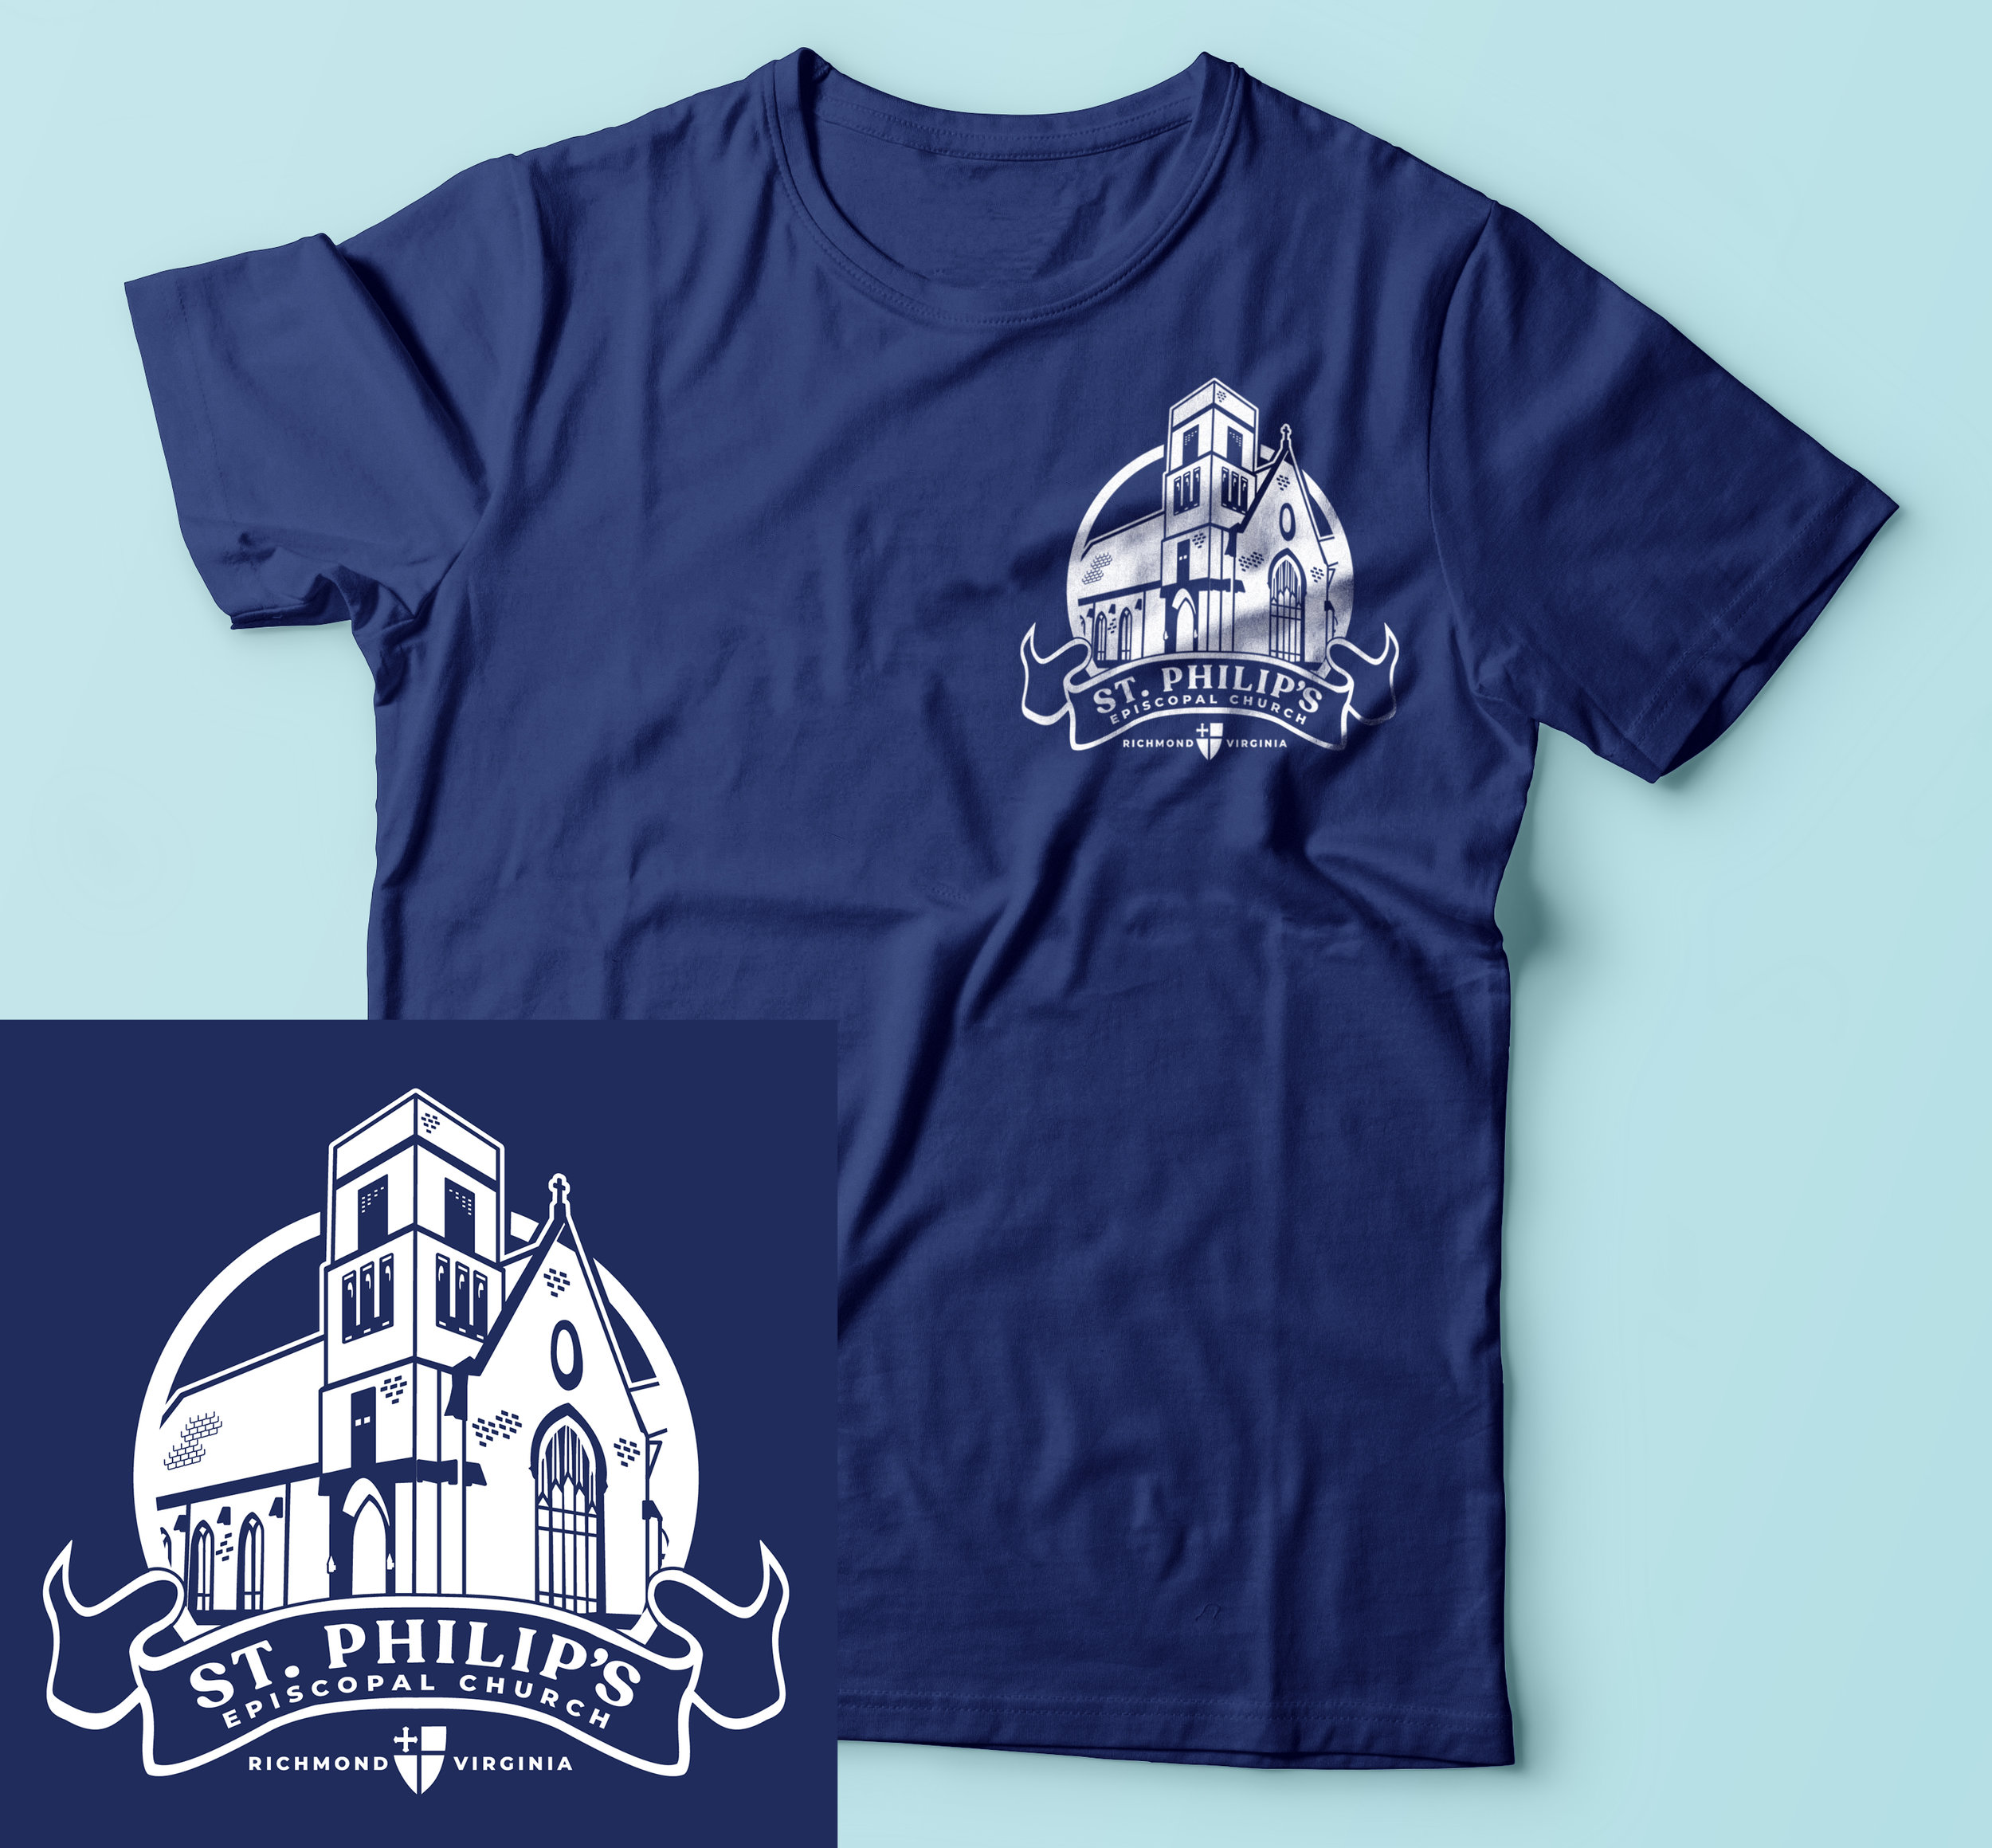 - My hometown church needed an updated design that members could wear for a few upcoming events and also to represent the church within the community and at conferences.